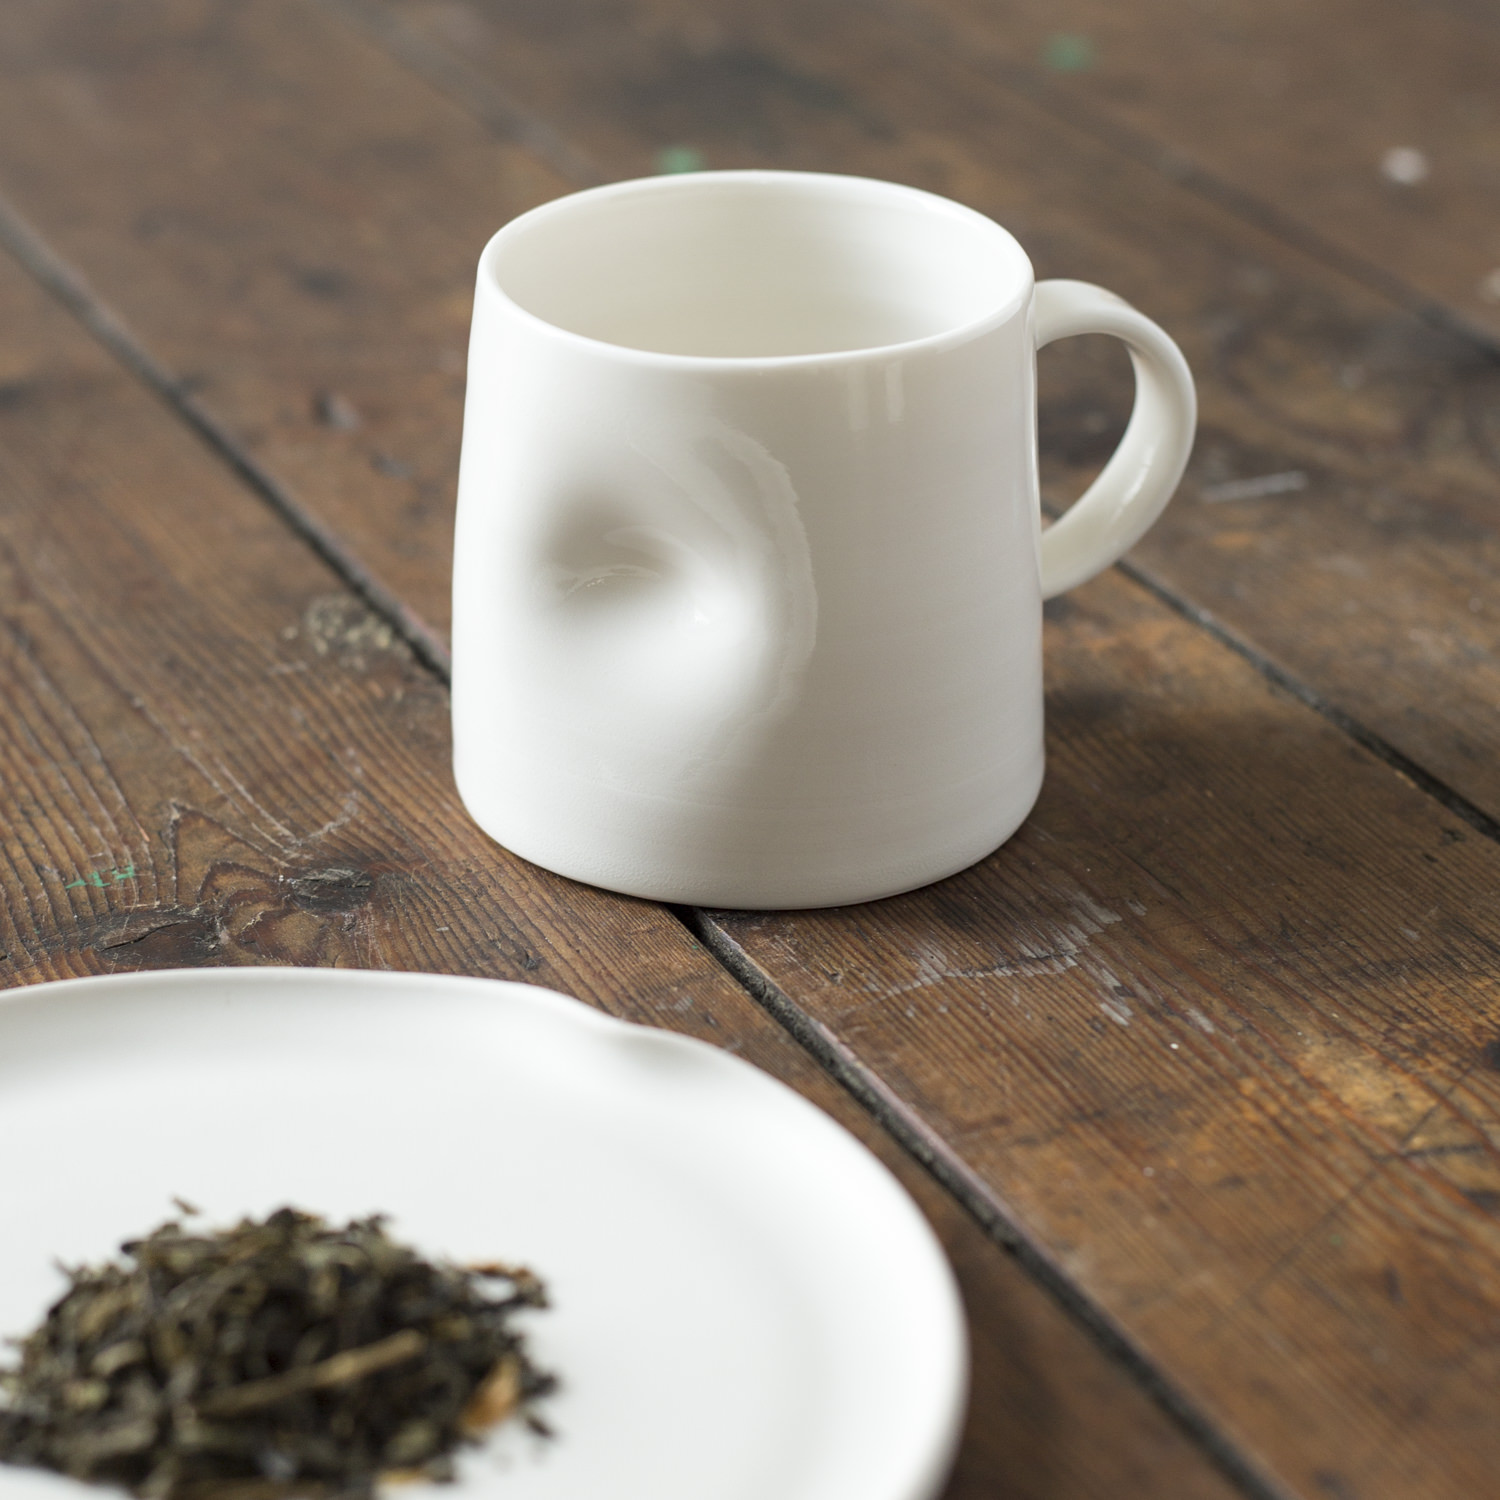 Emma Lacey - Everyday - Porcelain Handthrown